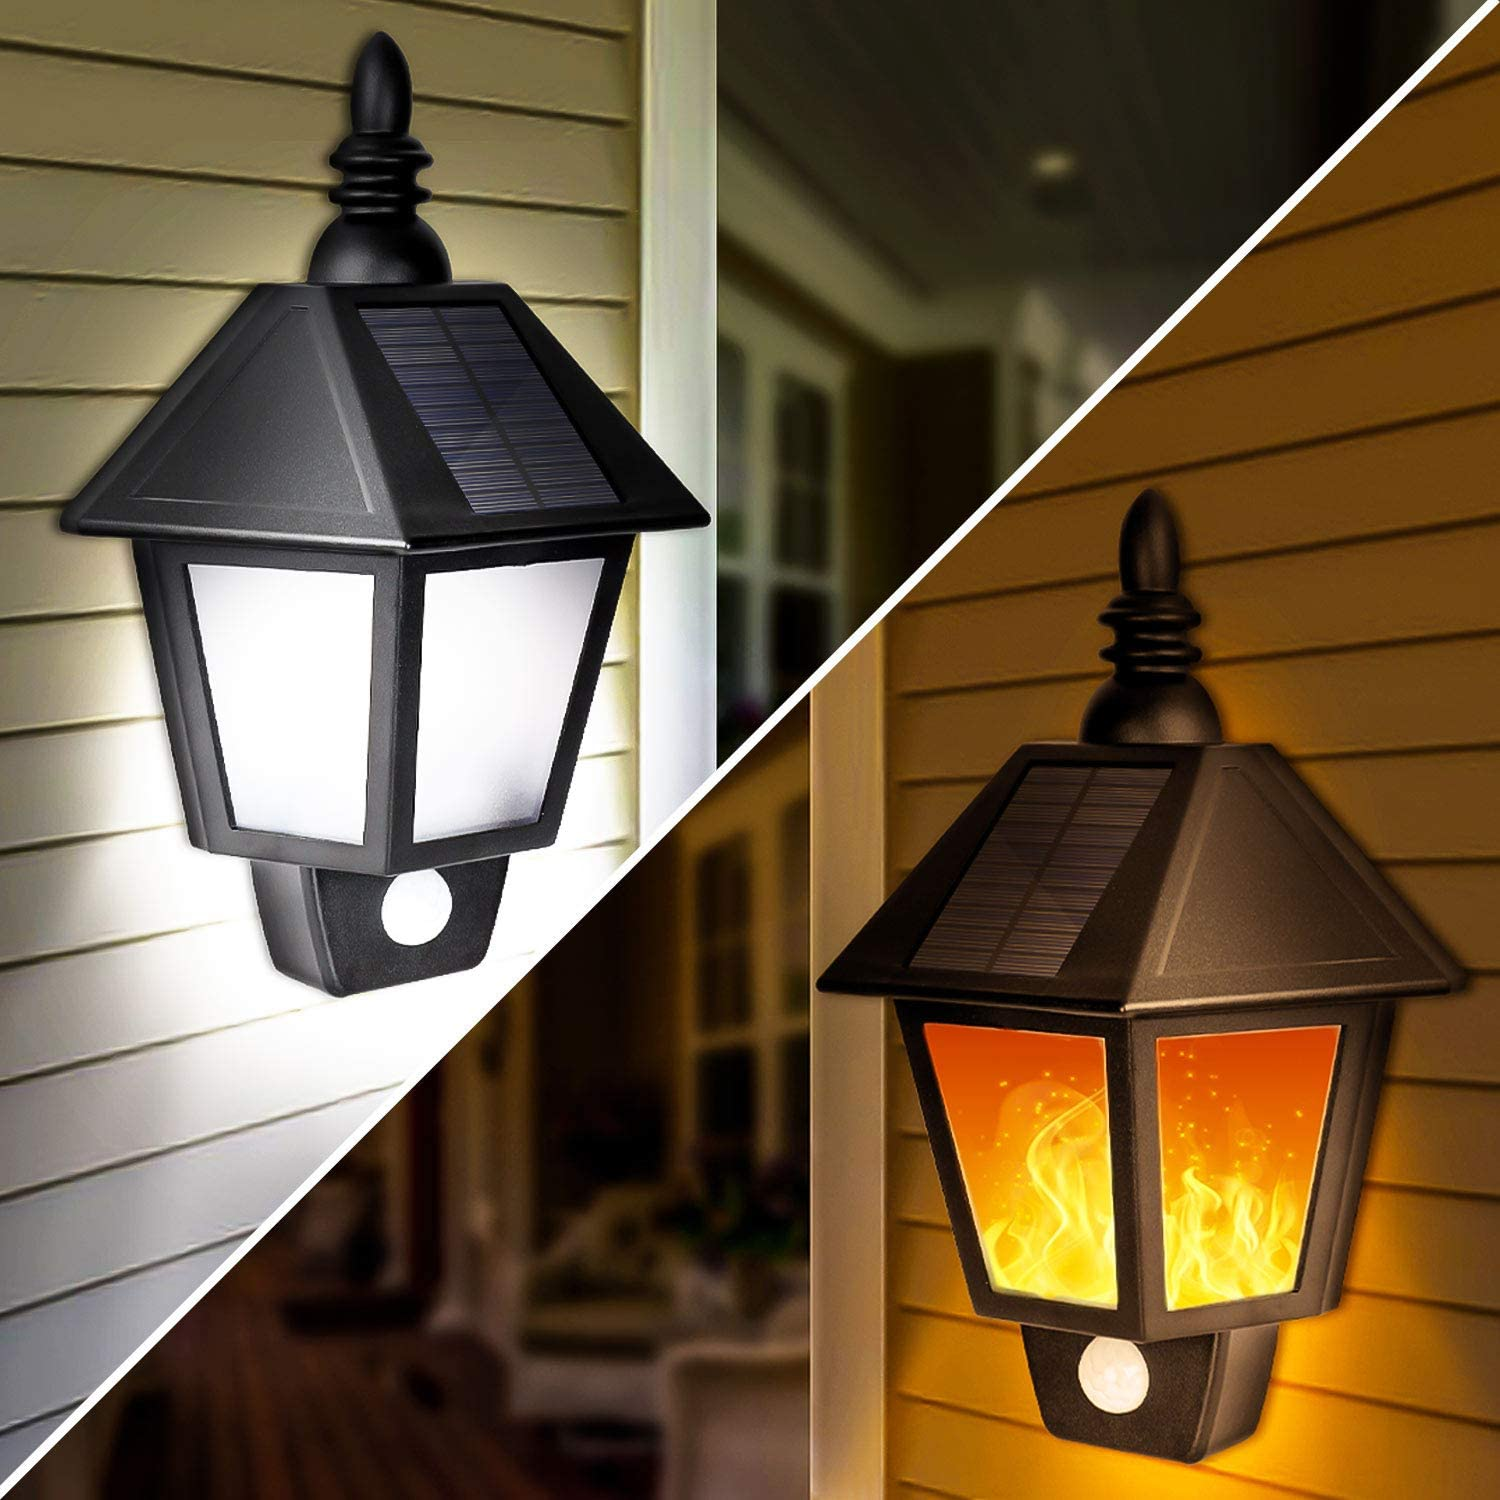 Solar Lights Outdoor, 2 in 1 Sconce Decorative Flickering Flame Wall Lights Dusk to Dawn, Wireless Waterproof Solar Lights Motion Sensor for Outdoor Party, Garden, Patio, Garage, Back/Front Door